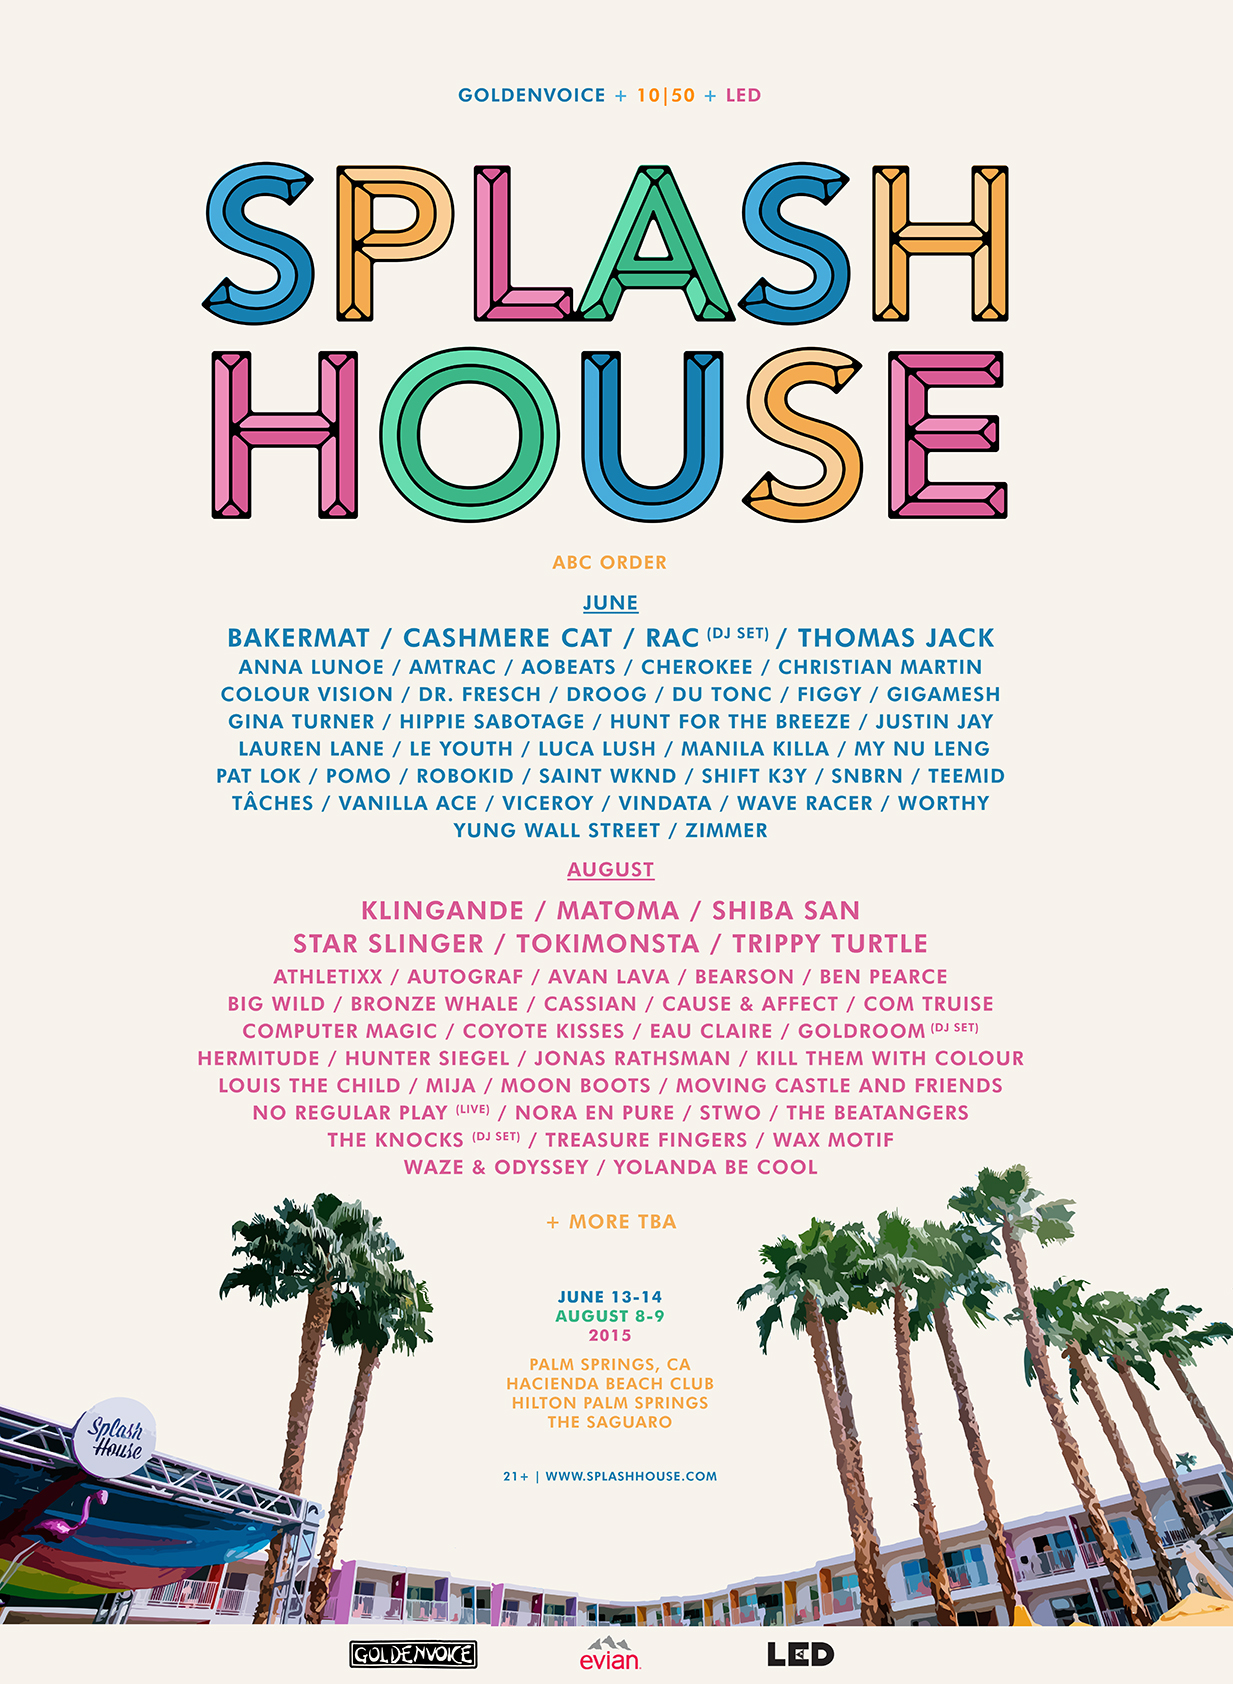 splash house flyer 2015.jpg